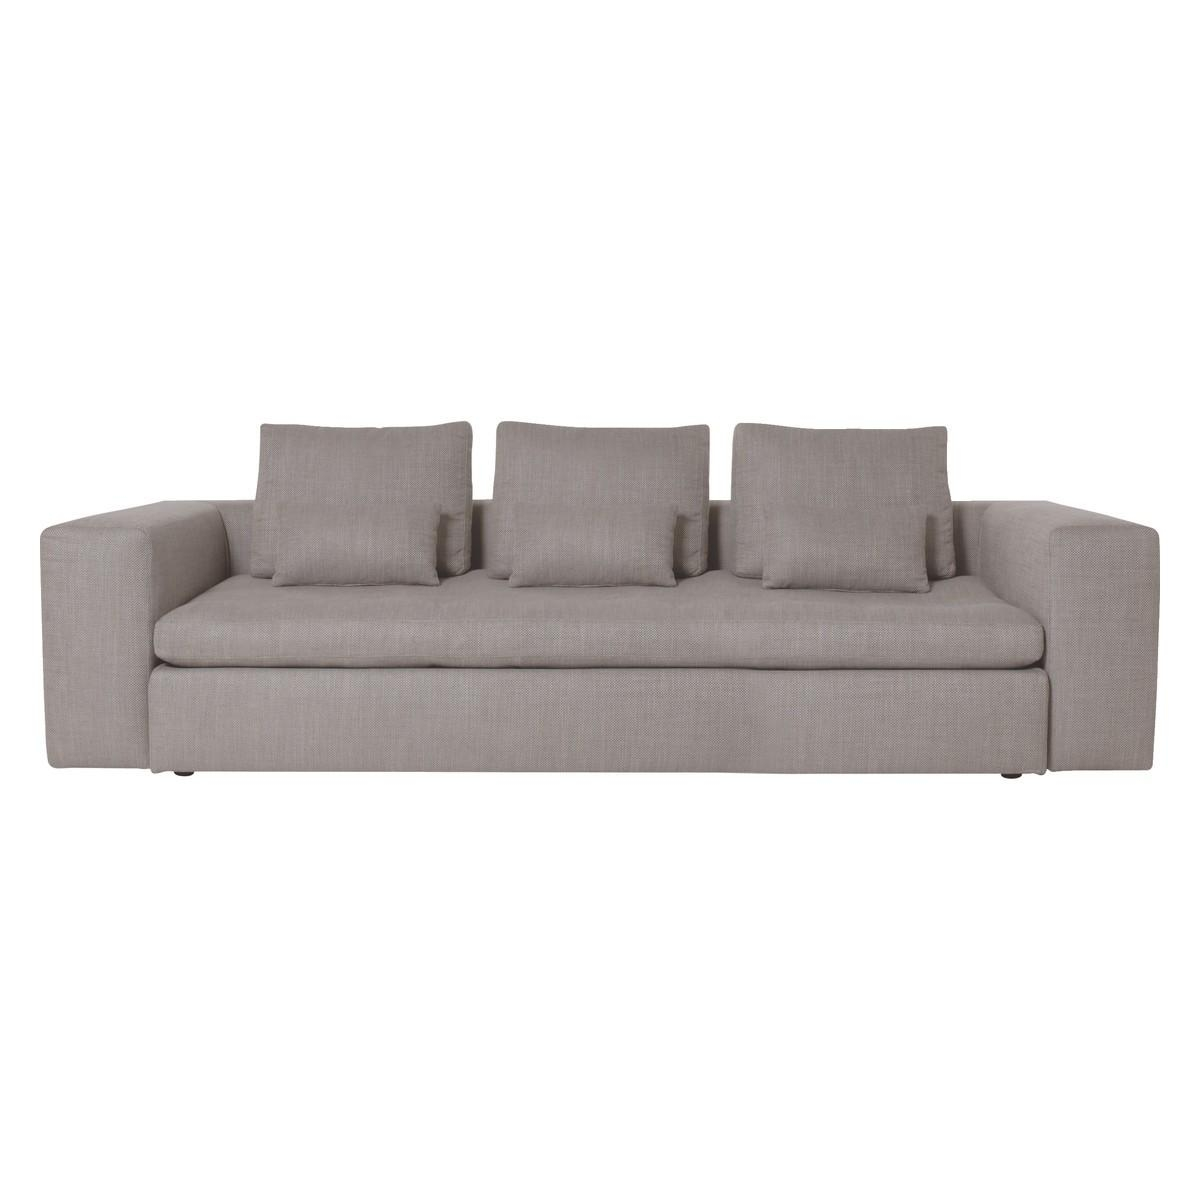 Sidney Light Grey Fabric Large 3 Seater Sofa | Buy Now At Habitat Uk Inside Large 4 Seater Sofas (Image 18 of 20)